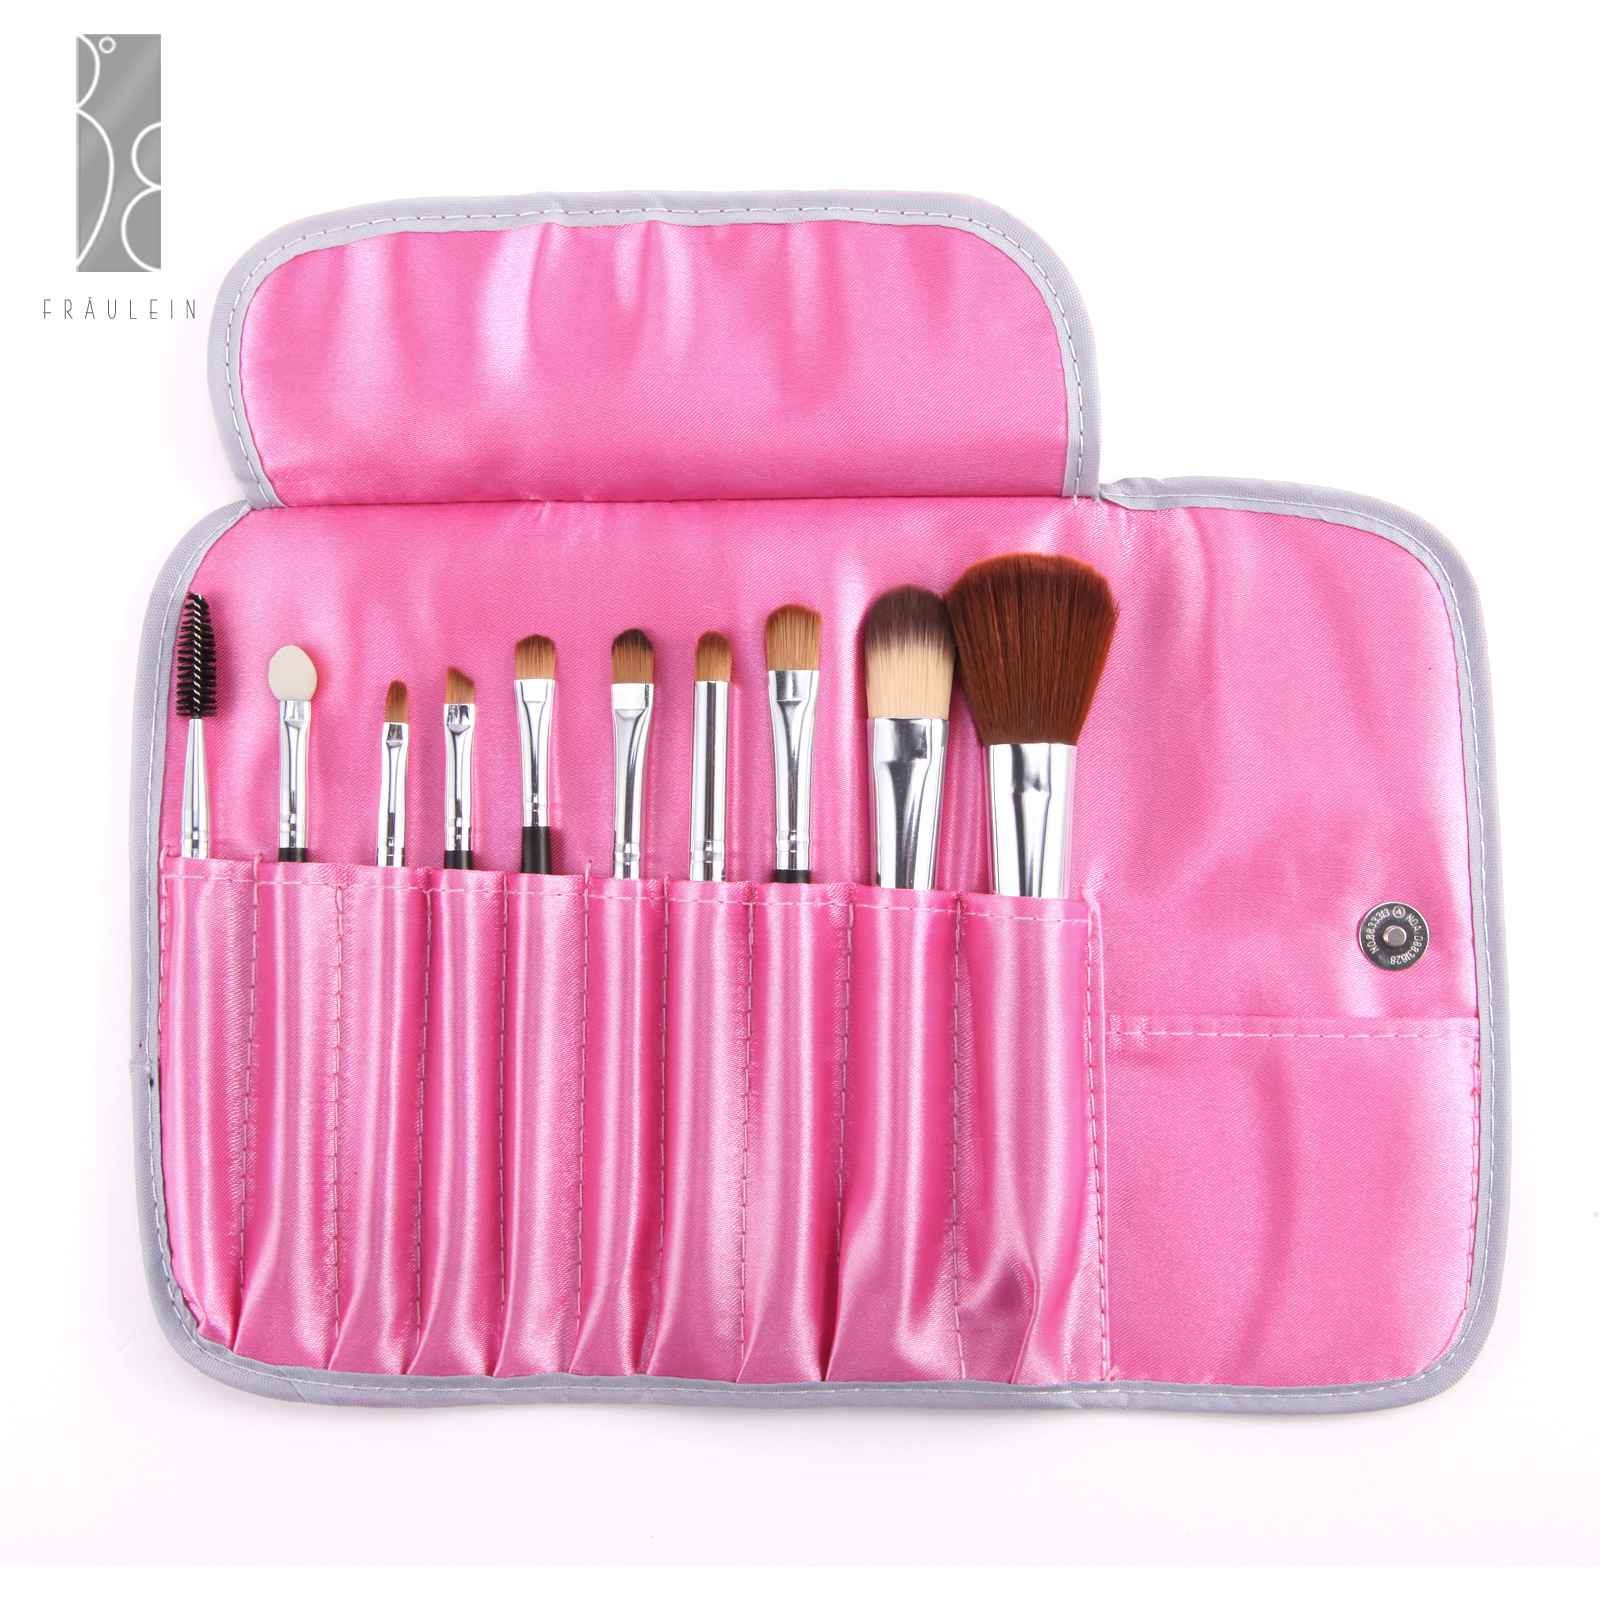 Fr ulein3 8 10 pieces mix amp match wooden brush makeup brushes set with pink case ebay - Matching wood pieces of different colors ...